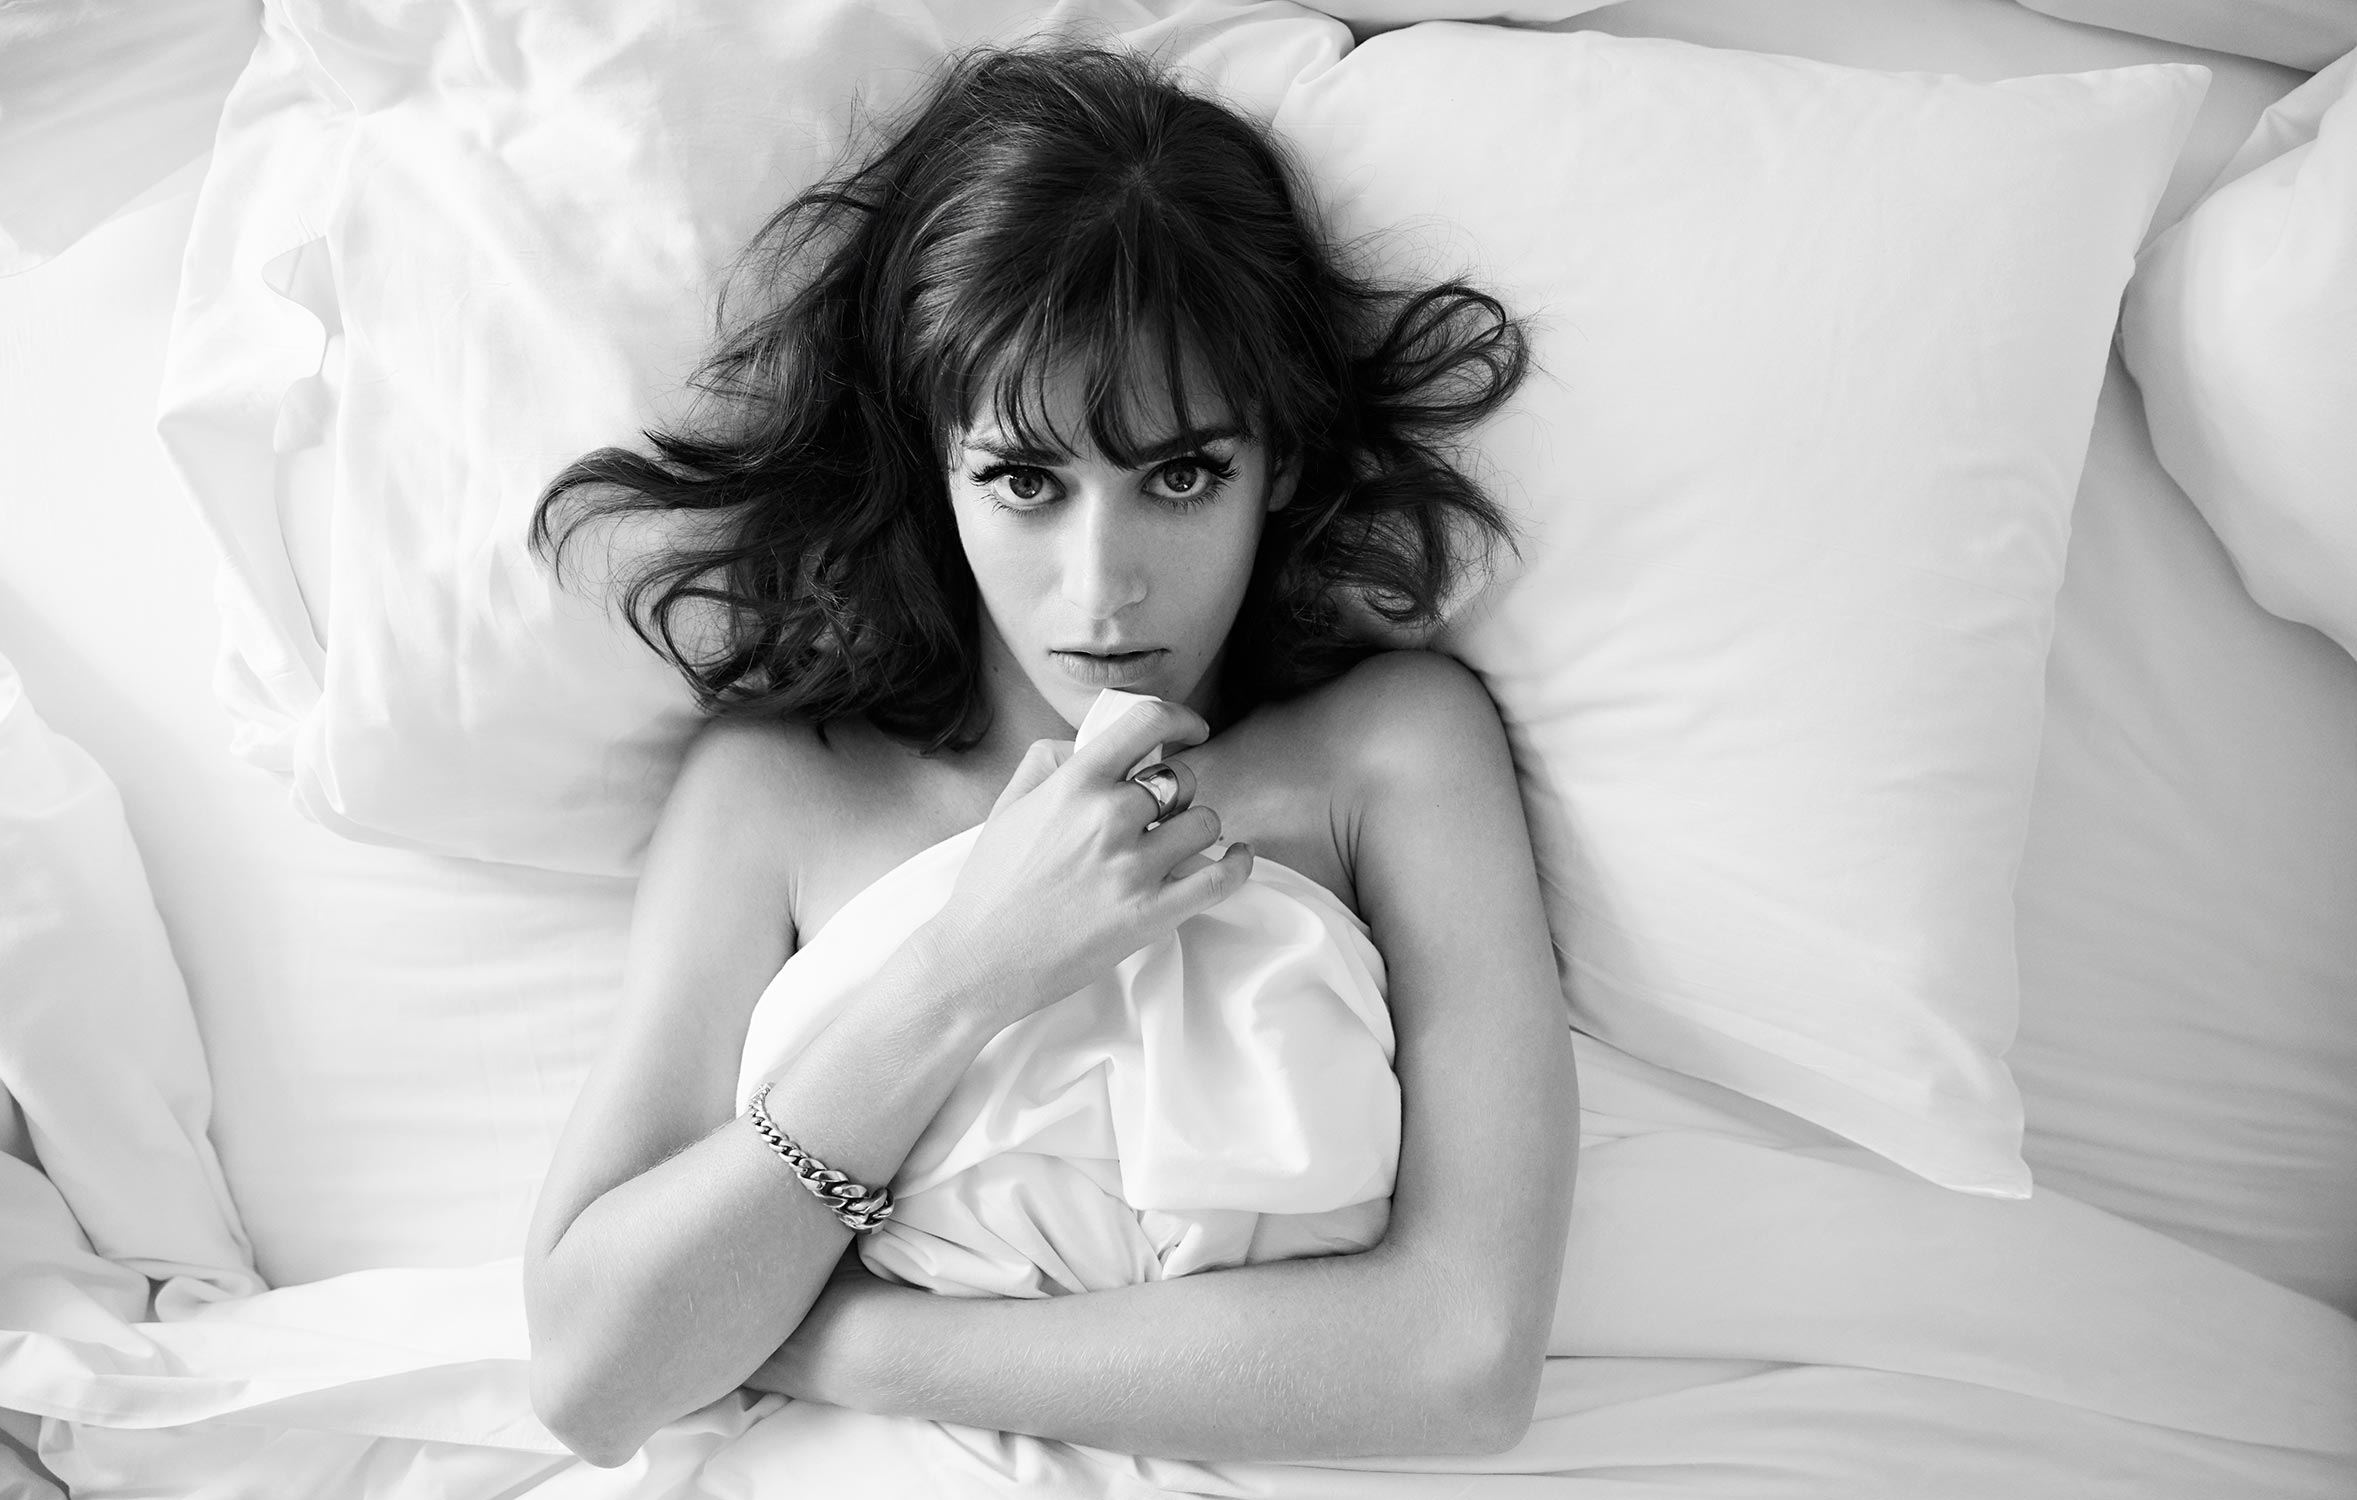 SLPF_MM_LIZZY_CAPLAN_SHOT_04_051_V2